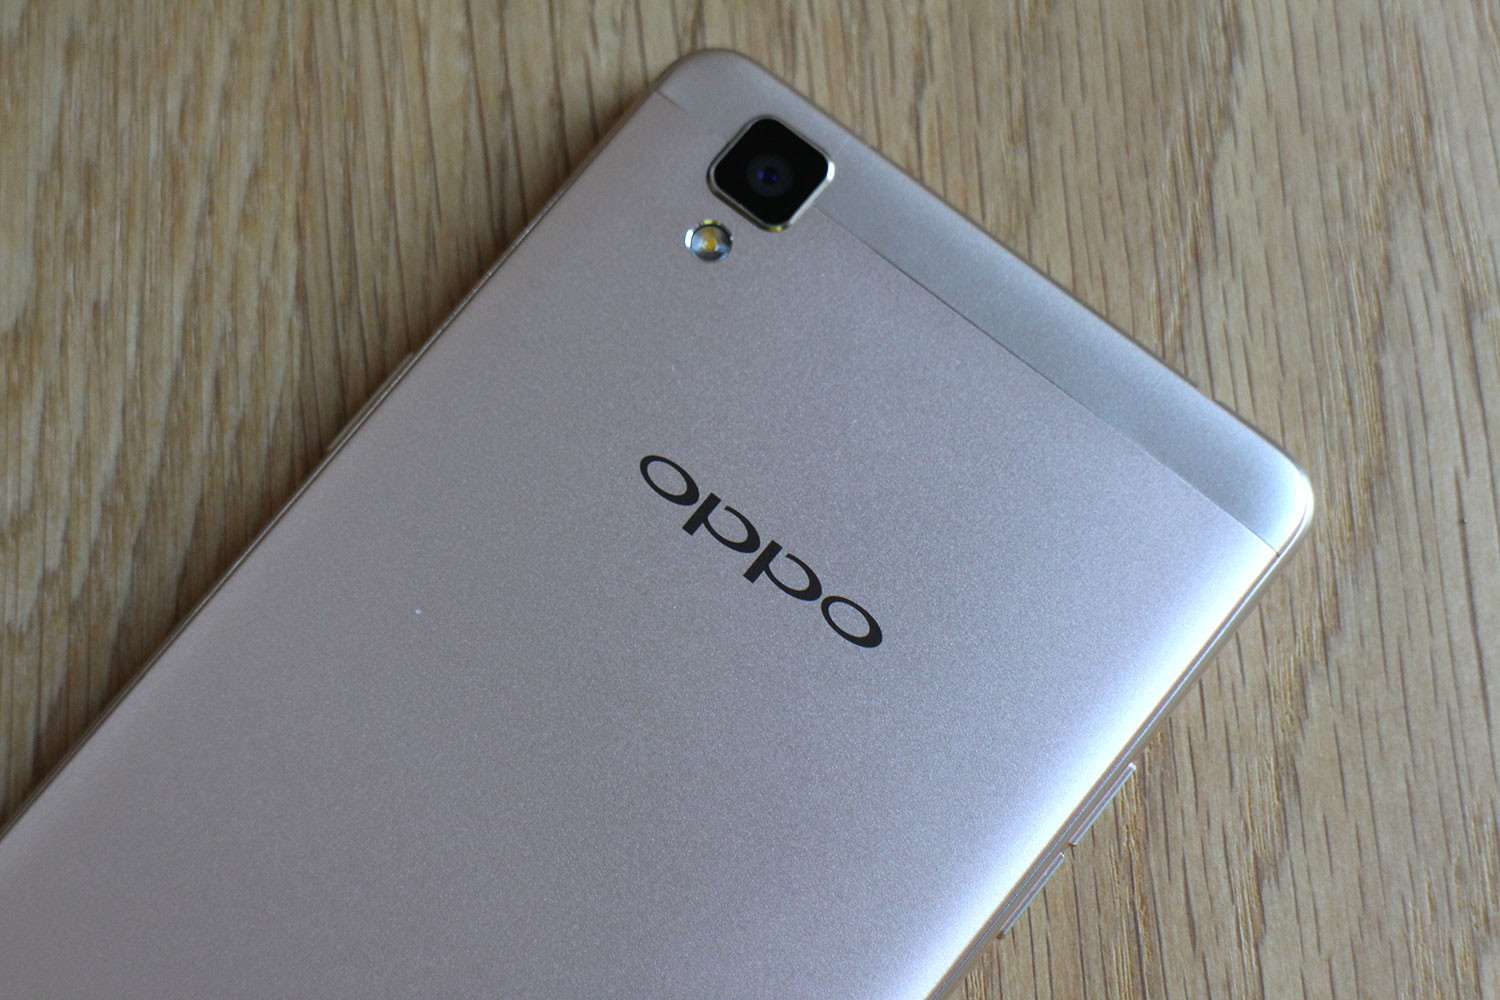 oppo-f1-top-back-angle-1500x1000